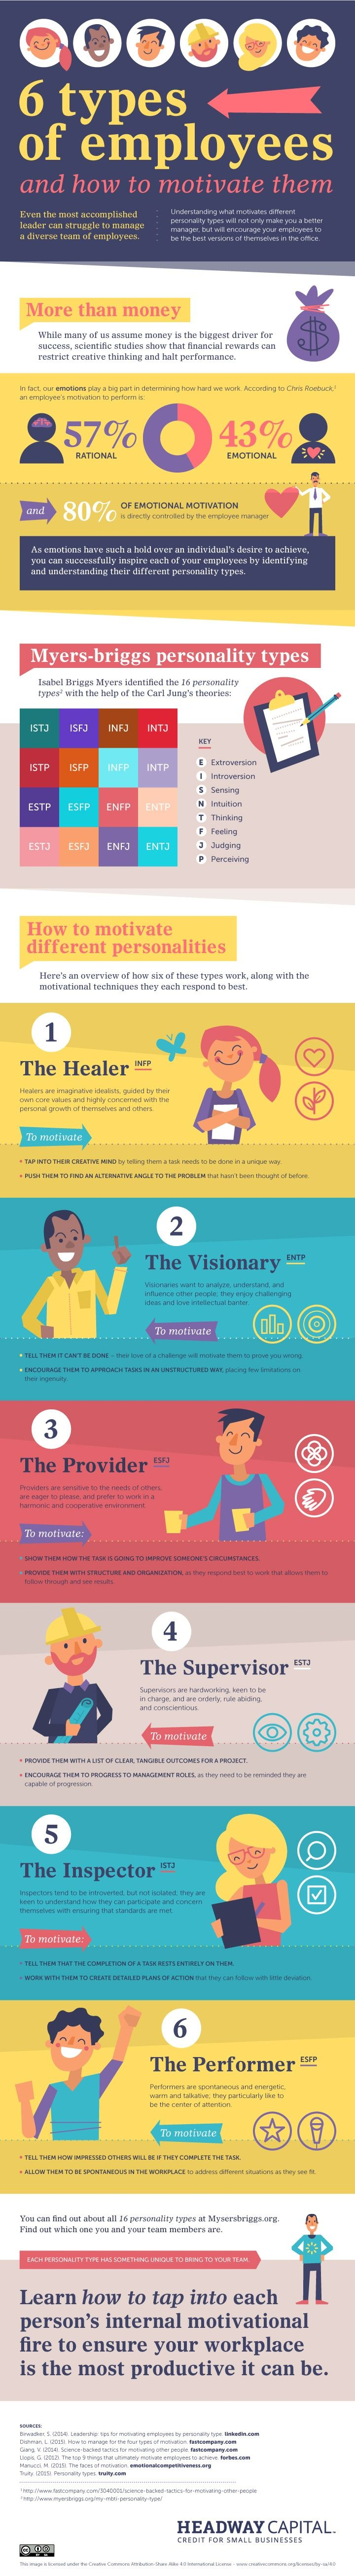 How Managers Can Motivate 6 Employee Personality Types | #infographic via @HubSpot